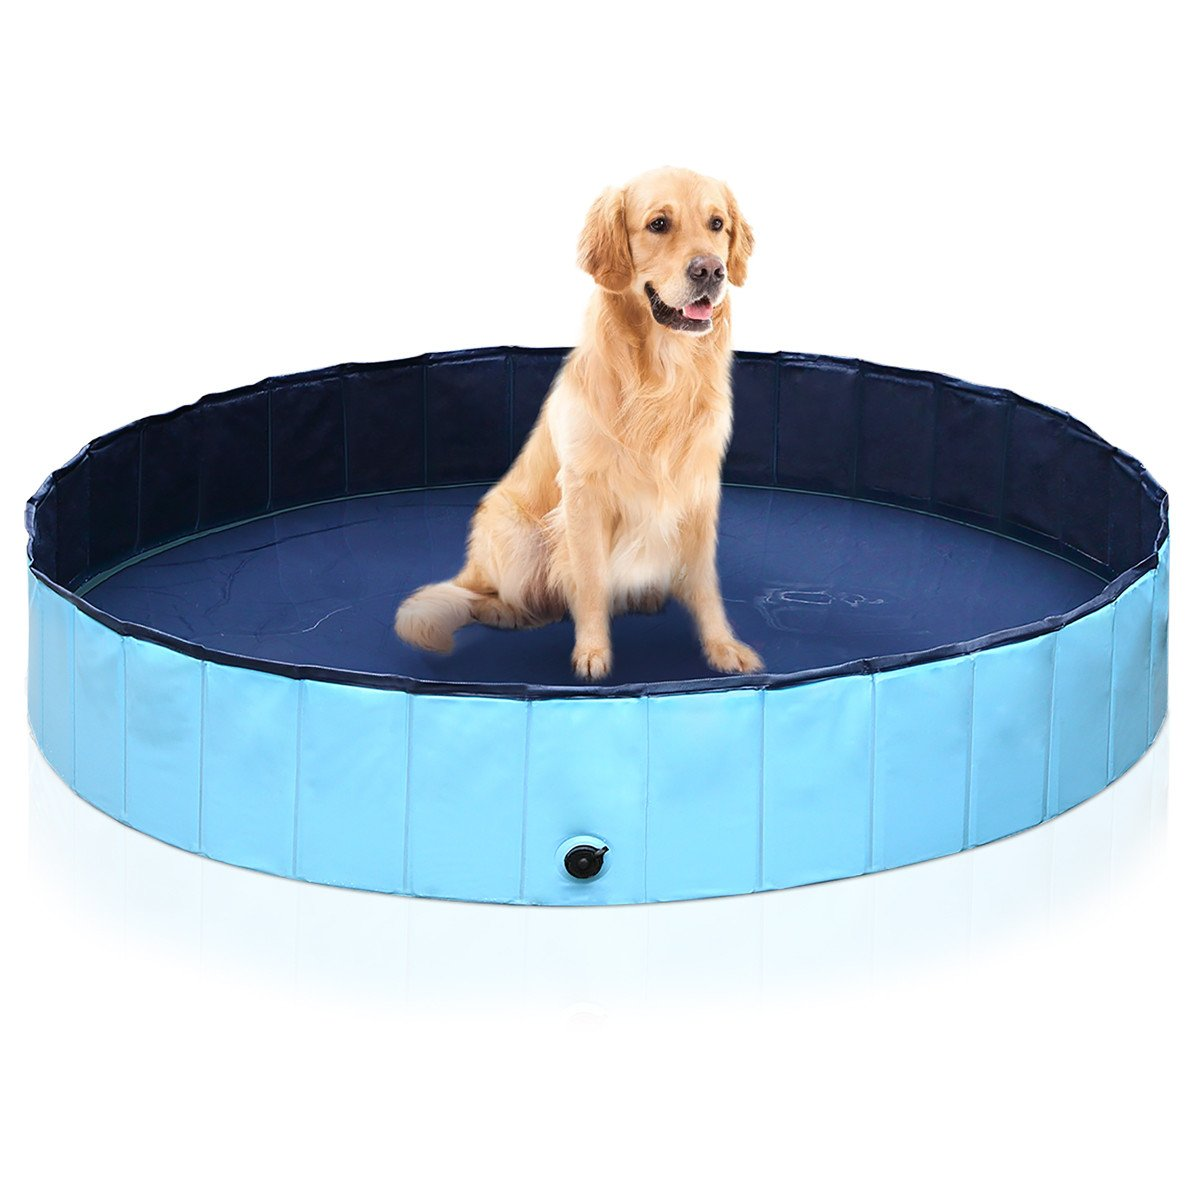 isYoung Dog Bath Pool Foldable PVC (48inch x 12inch, Blue)